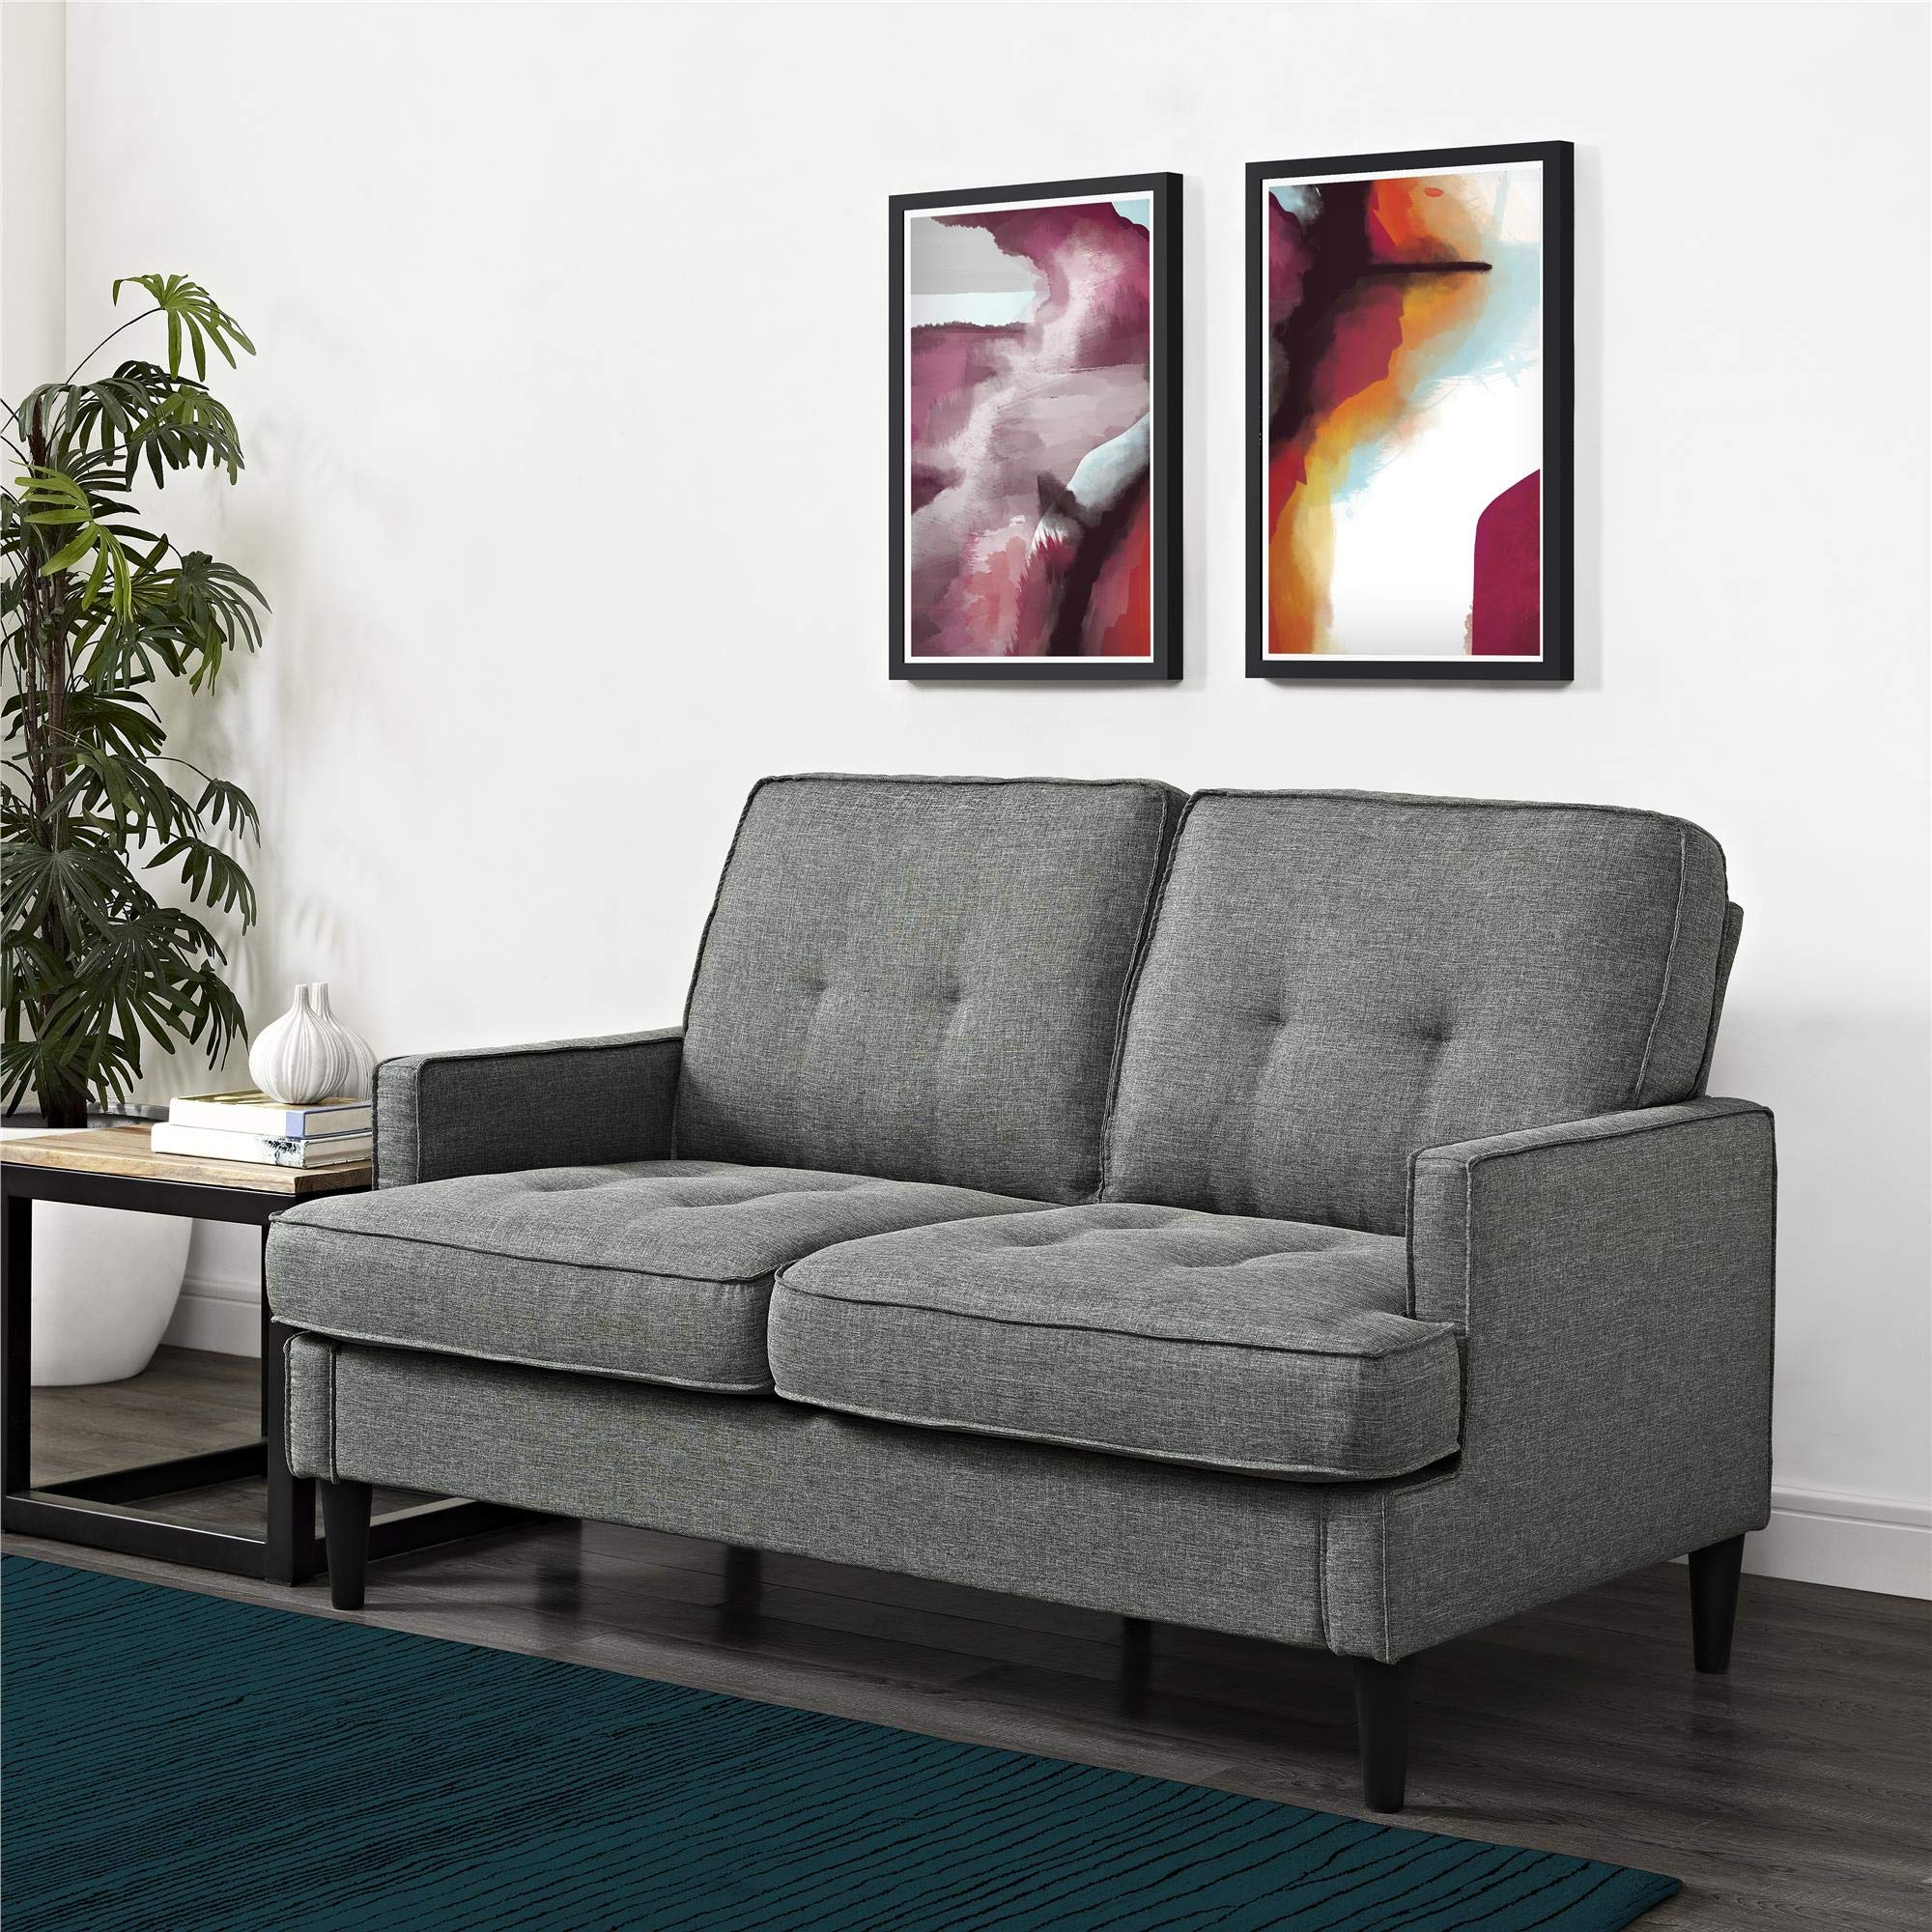 REALROOMS Dana Mid-Century Modern Loveseat, Living Room Couch, Gray by REALROOMS